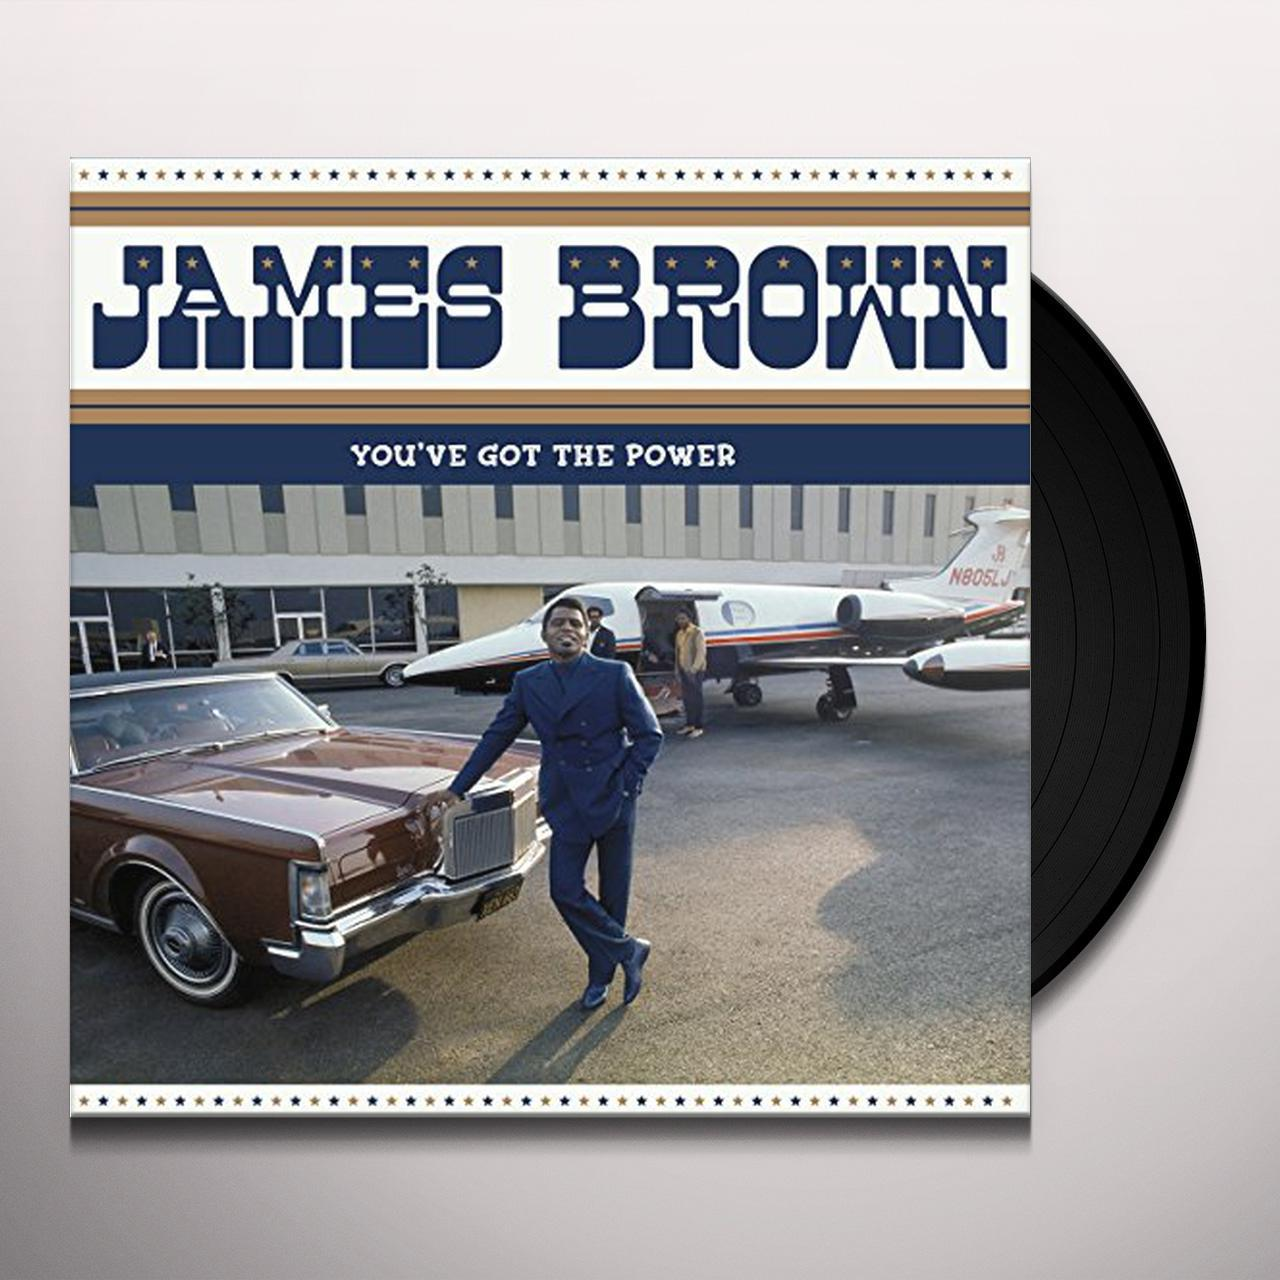 hight resolution of james brown you ve got the power federal king hits 1956 62 vinyl record